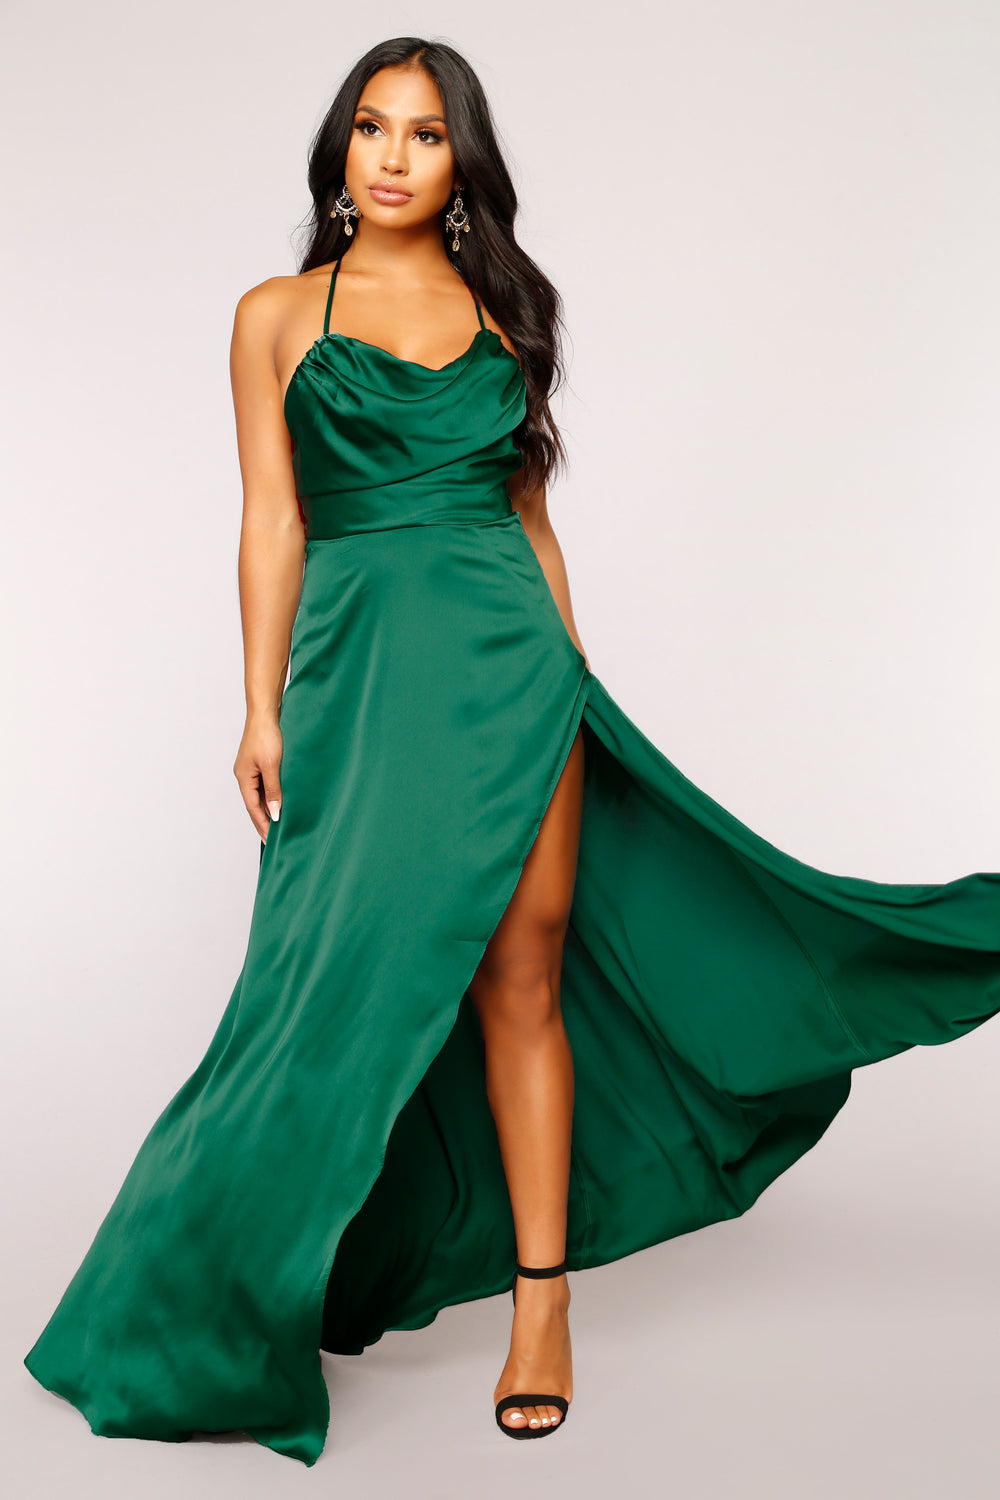 Rare Feeling Dress - Green